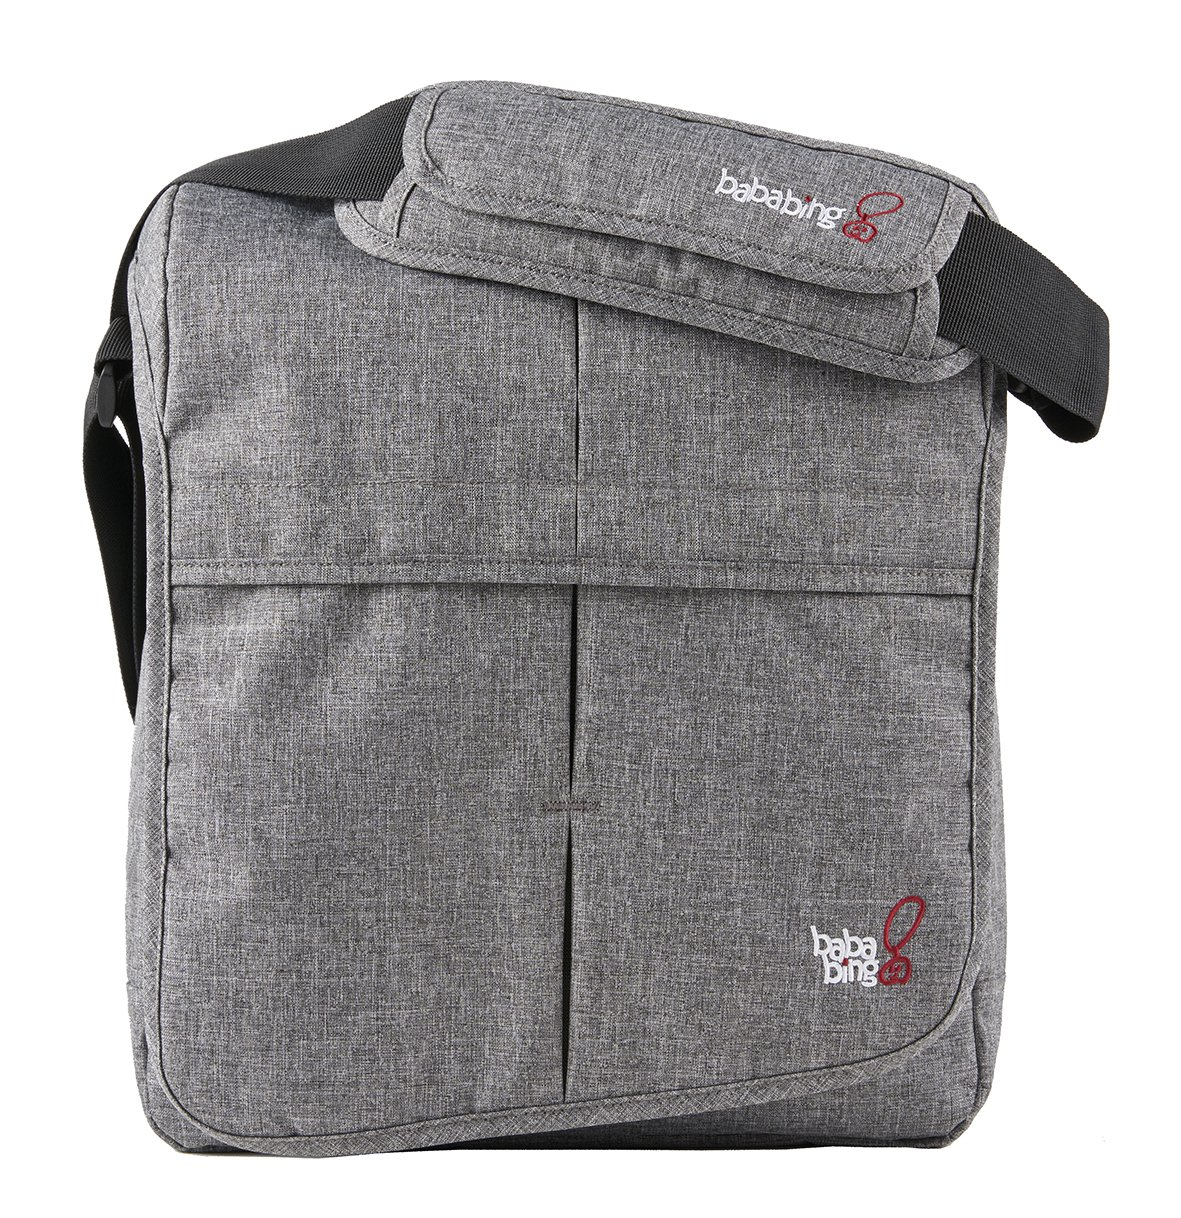 Bababing Daytripper Lite Changing Bag, Grey Marl baba bing BB55-001